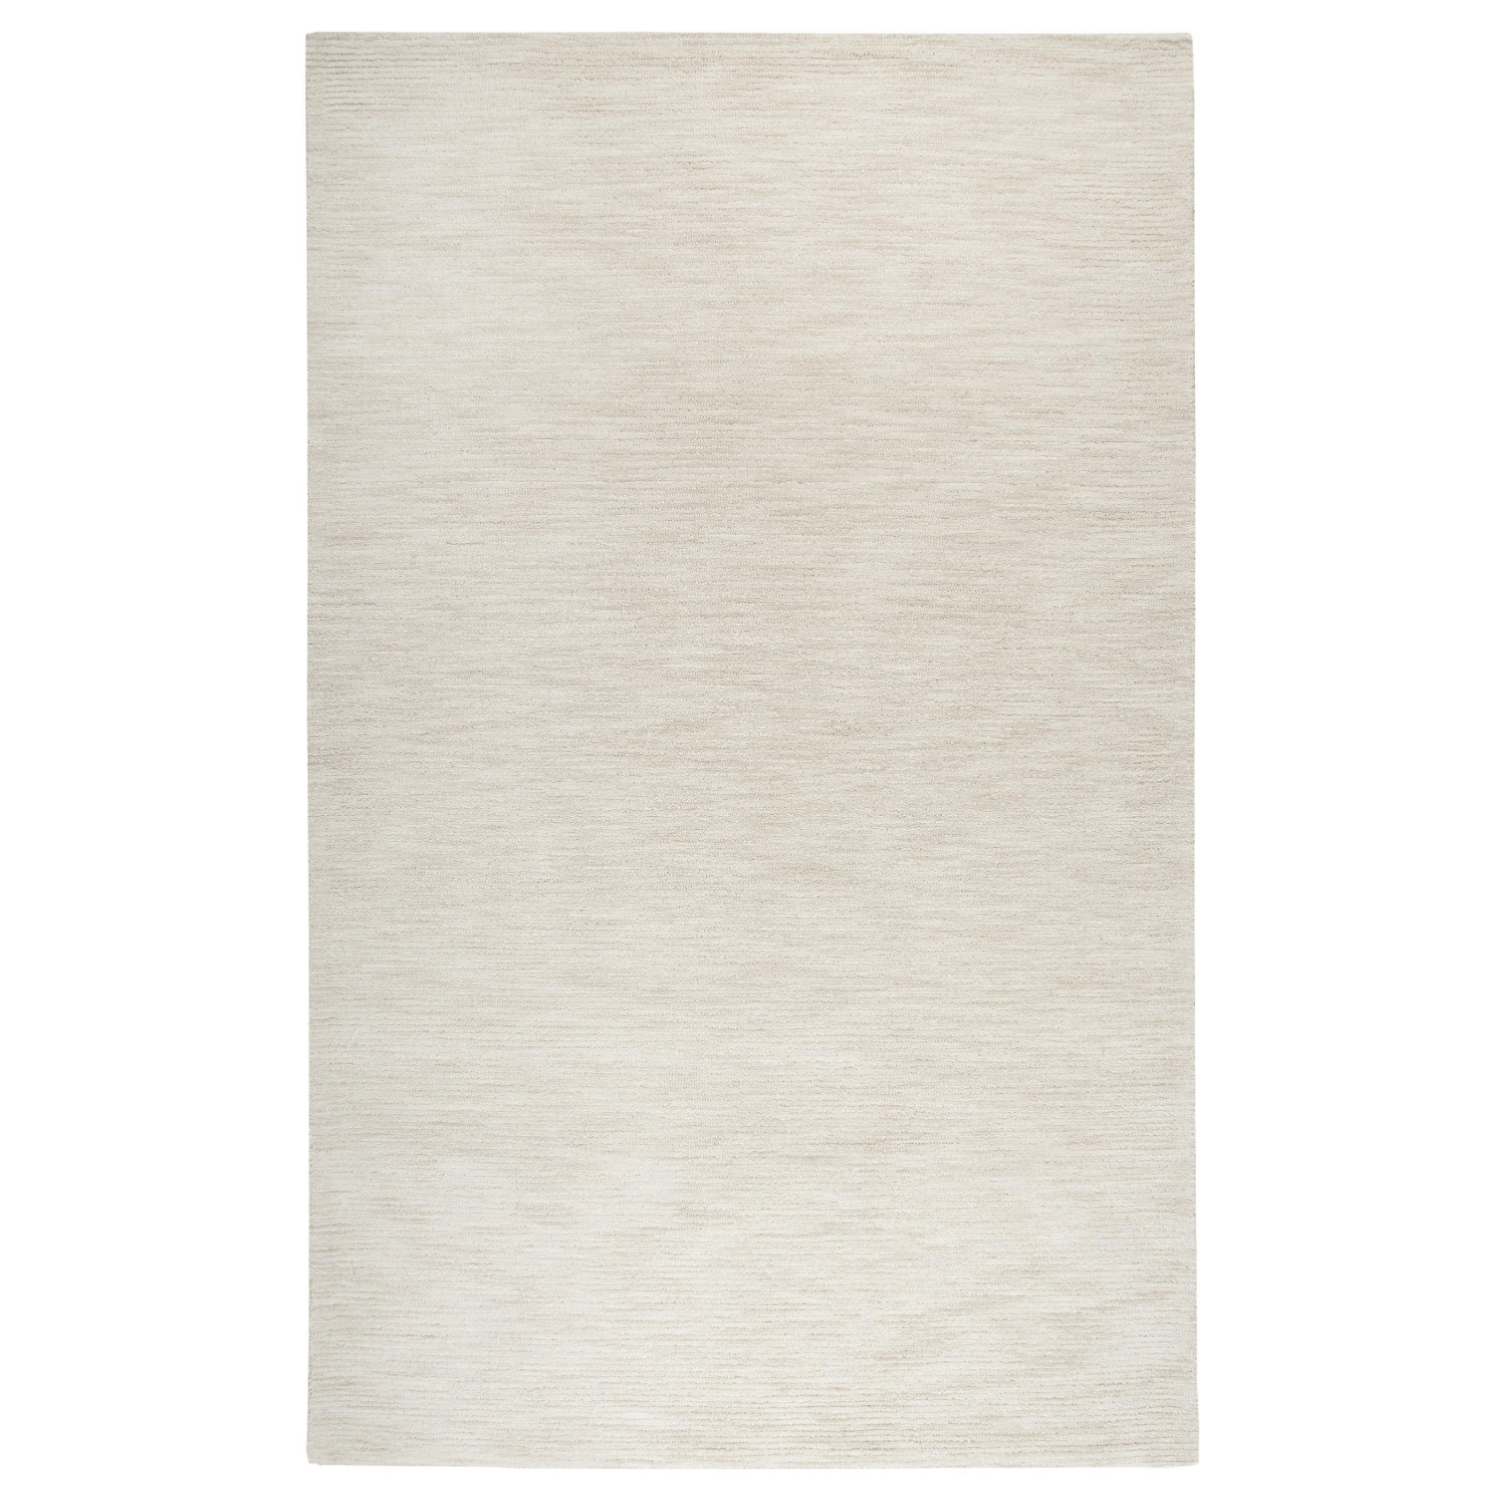 Fifth Avenue Rizzy Home FA167B Beige Neutral 100% Wool Solid Area Rug